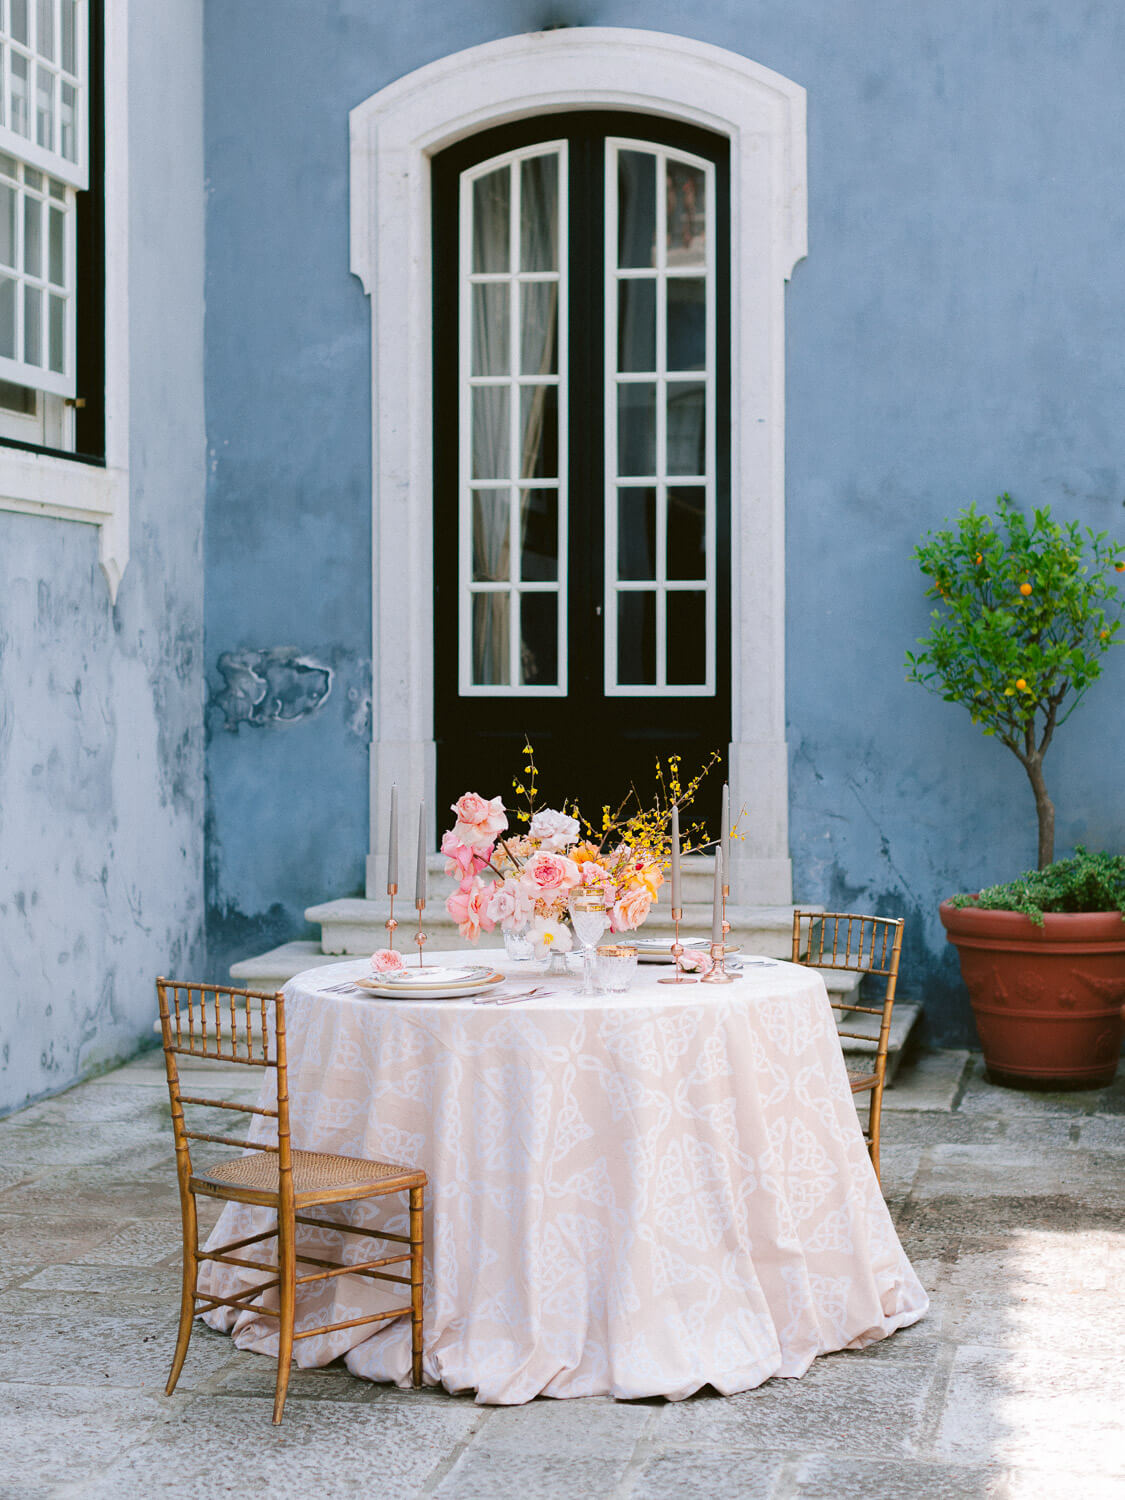 sweat-heart table with a floral centrepiece in outdoor reception wedding in Portugal by Portugal Wedding Photographer